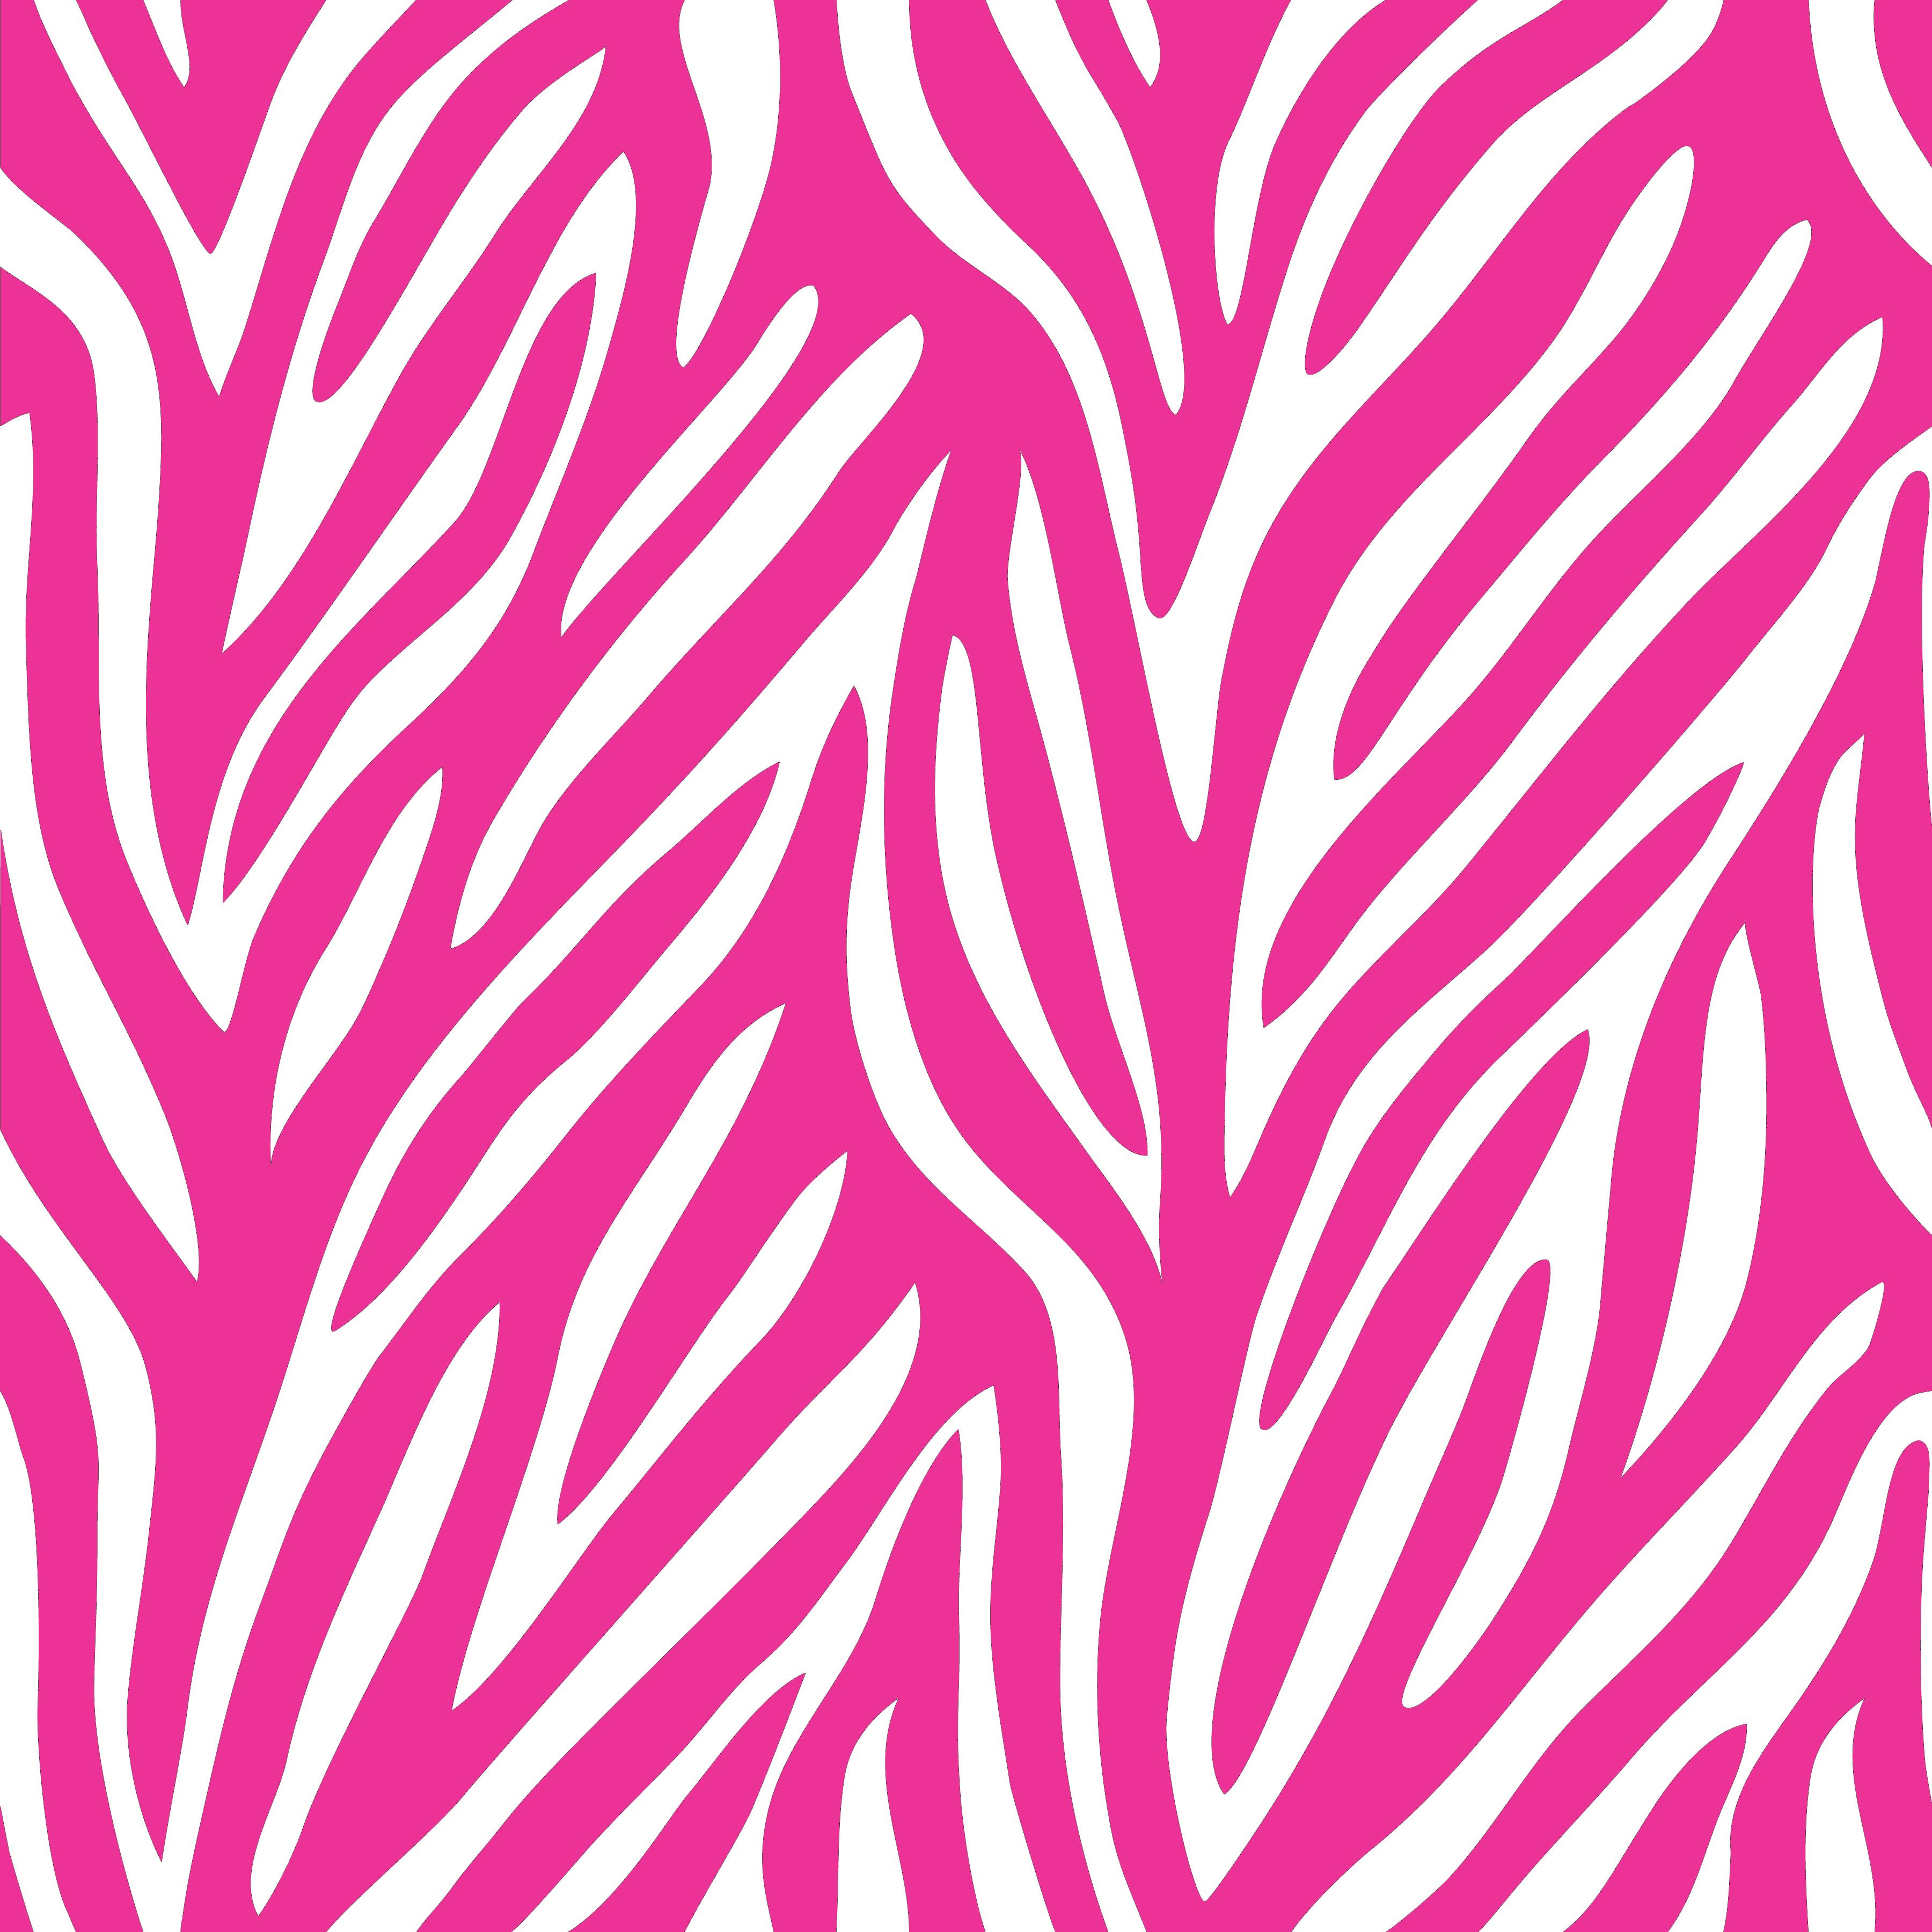 3600x3600 images of pink zebra print wallpaper high definition wallpapers ...